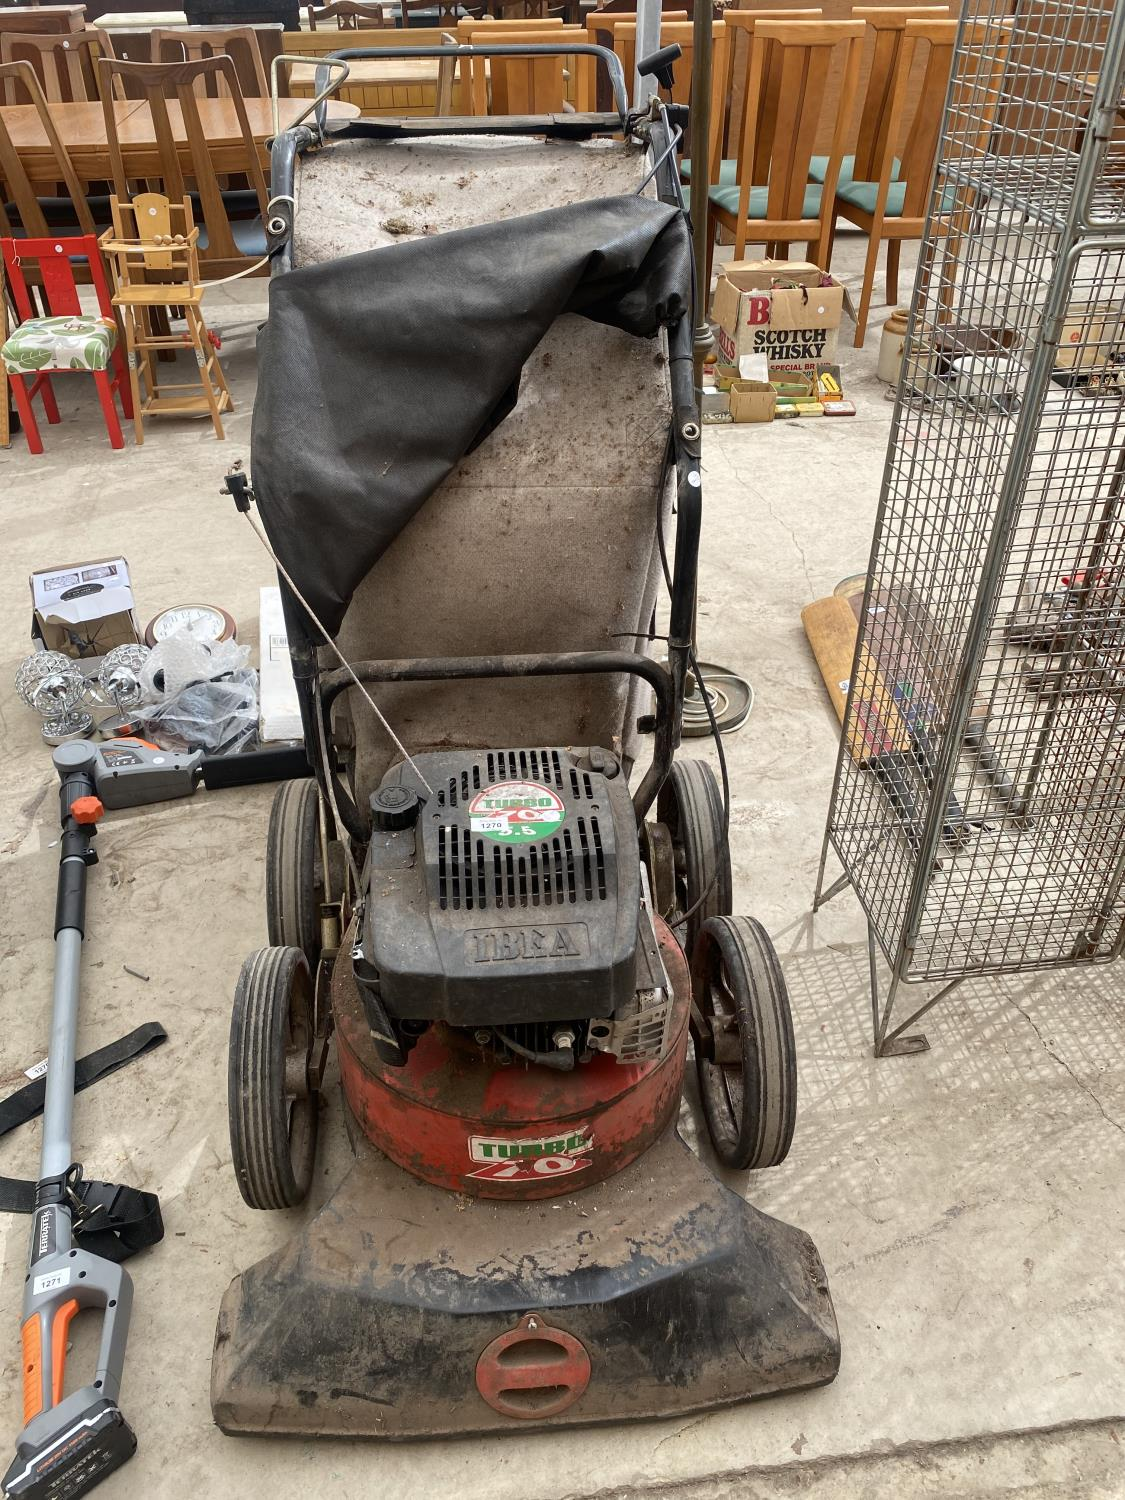 AN IBEA GARDEN HOOVER WITH TURBO 70 PETROL ENIGINE